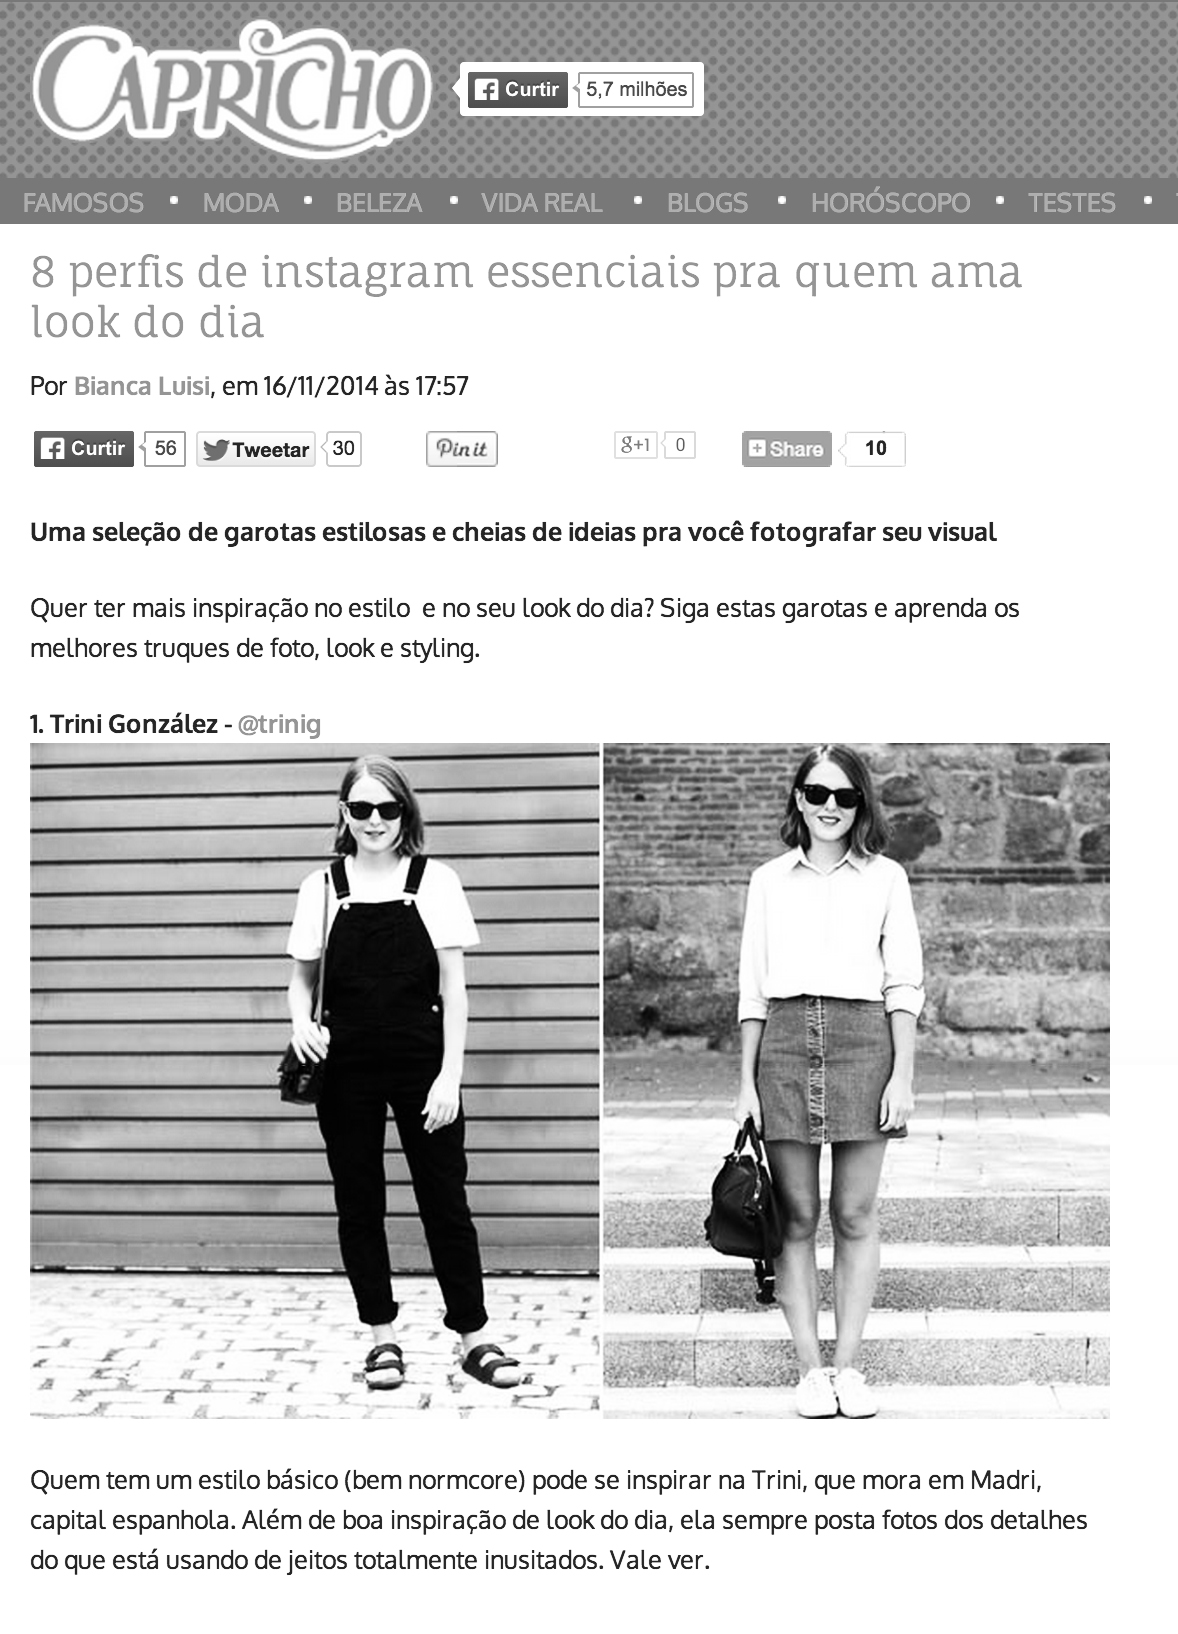 Trini blog | Brazilian online magazine Capricho feature